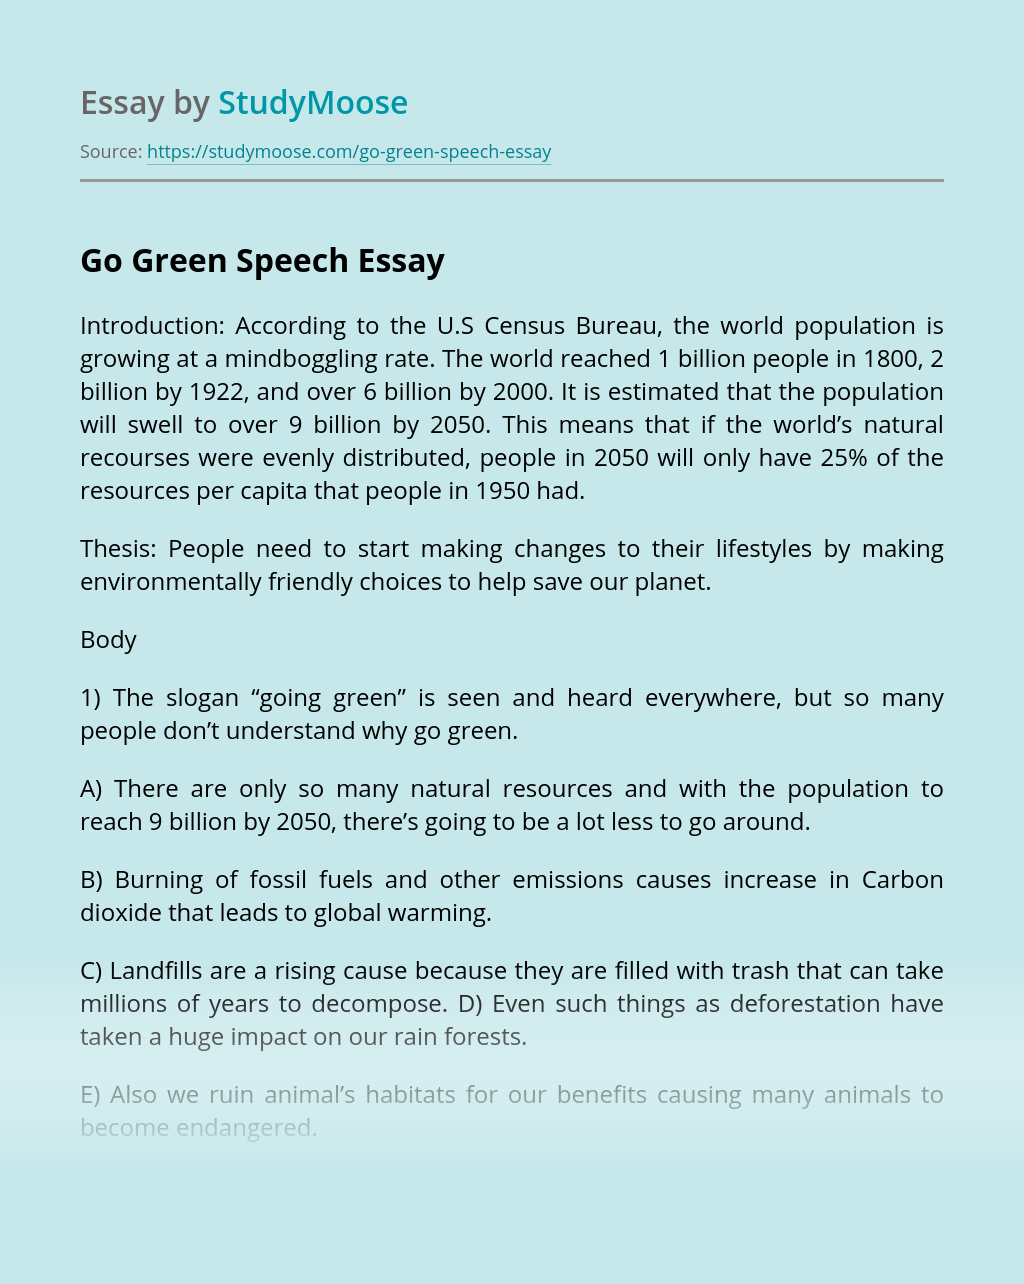 Going green essays